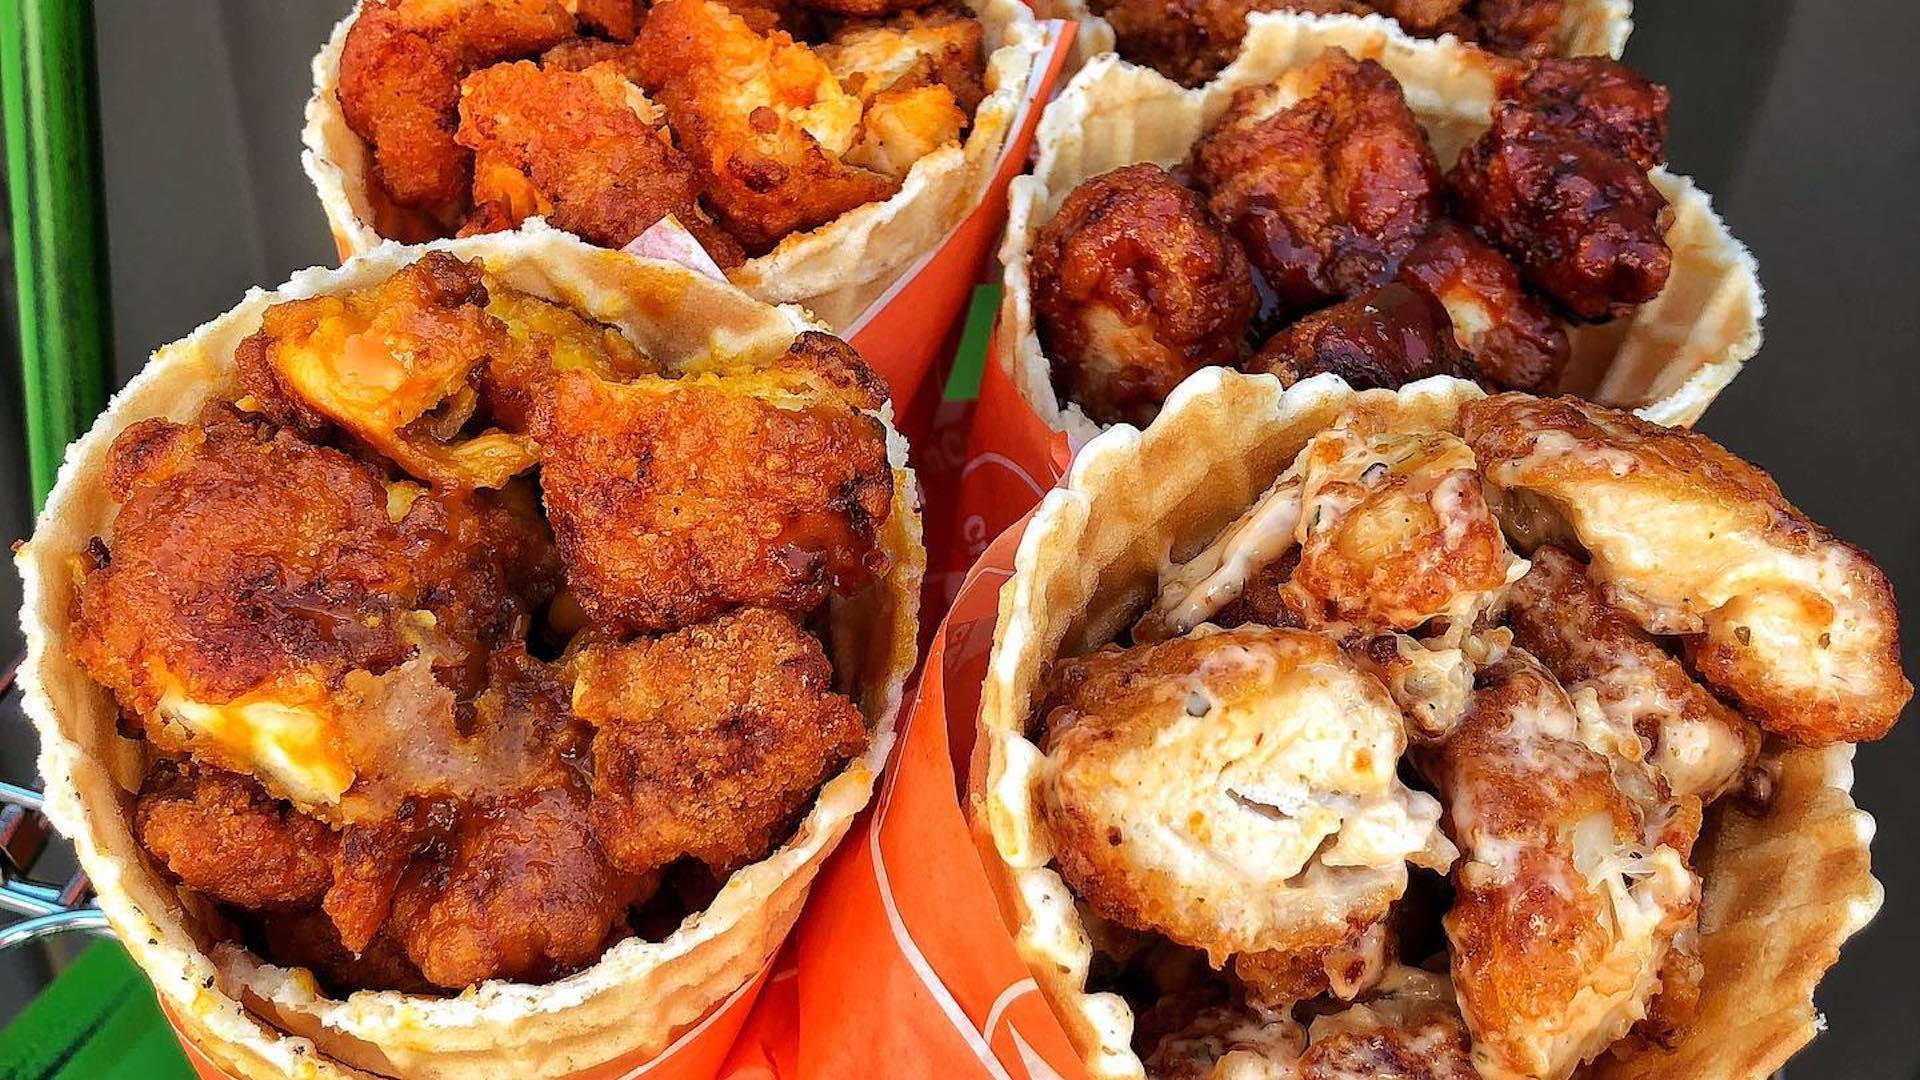 Photo of fried chicken inside of large waffle cones